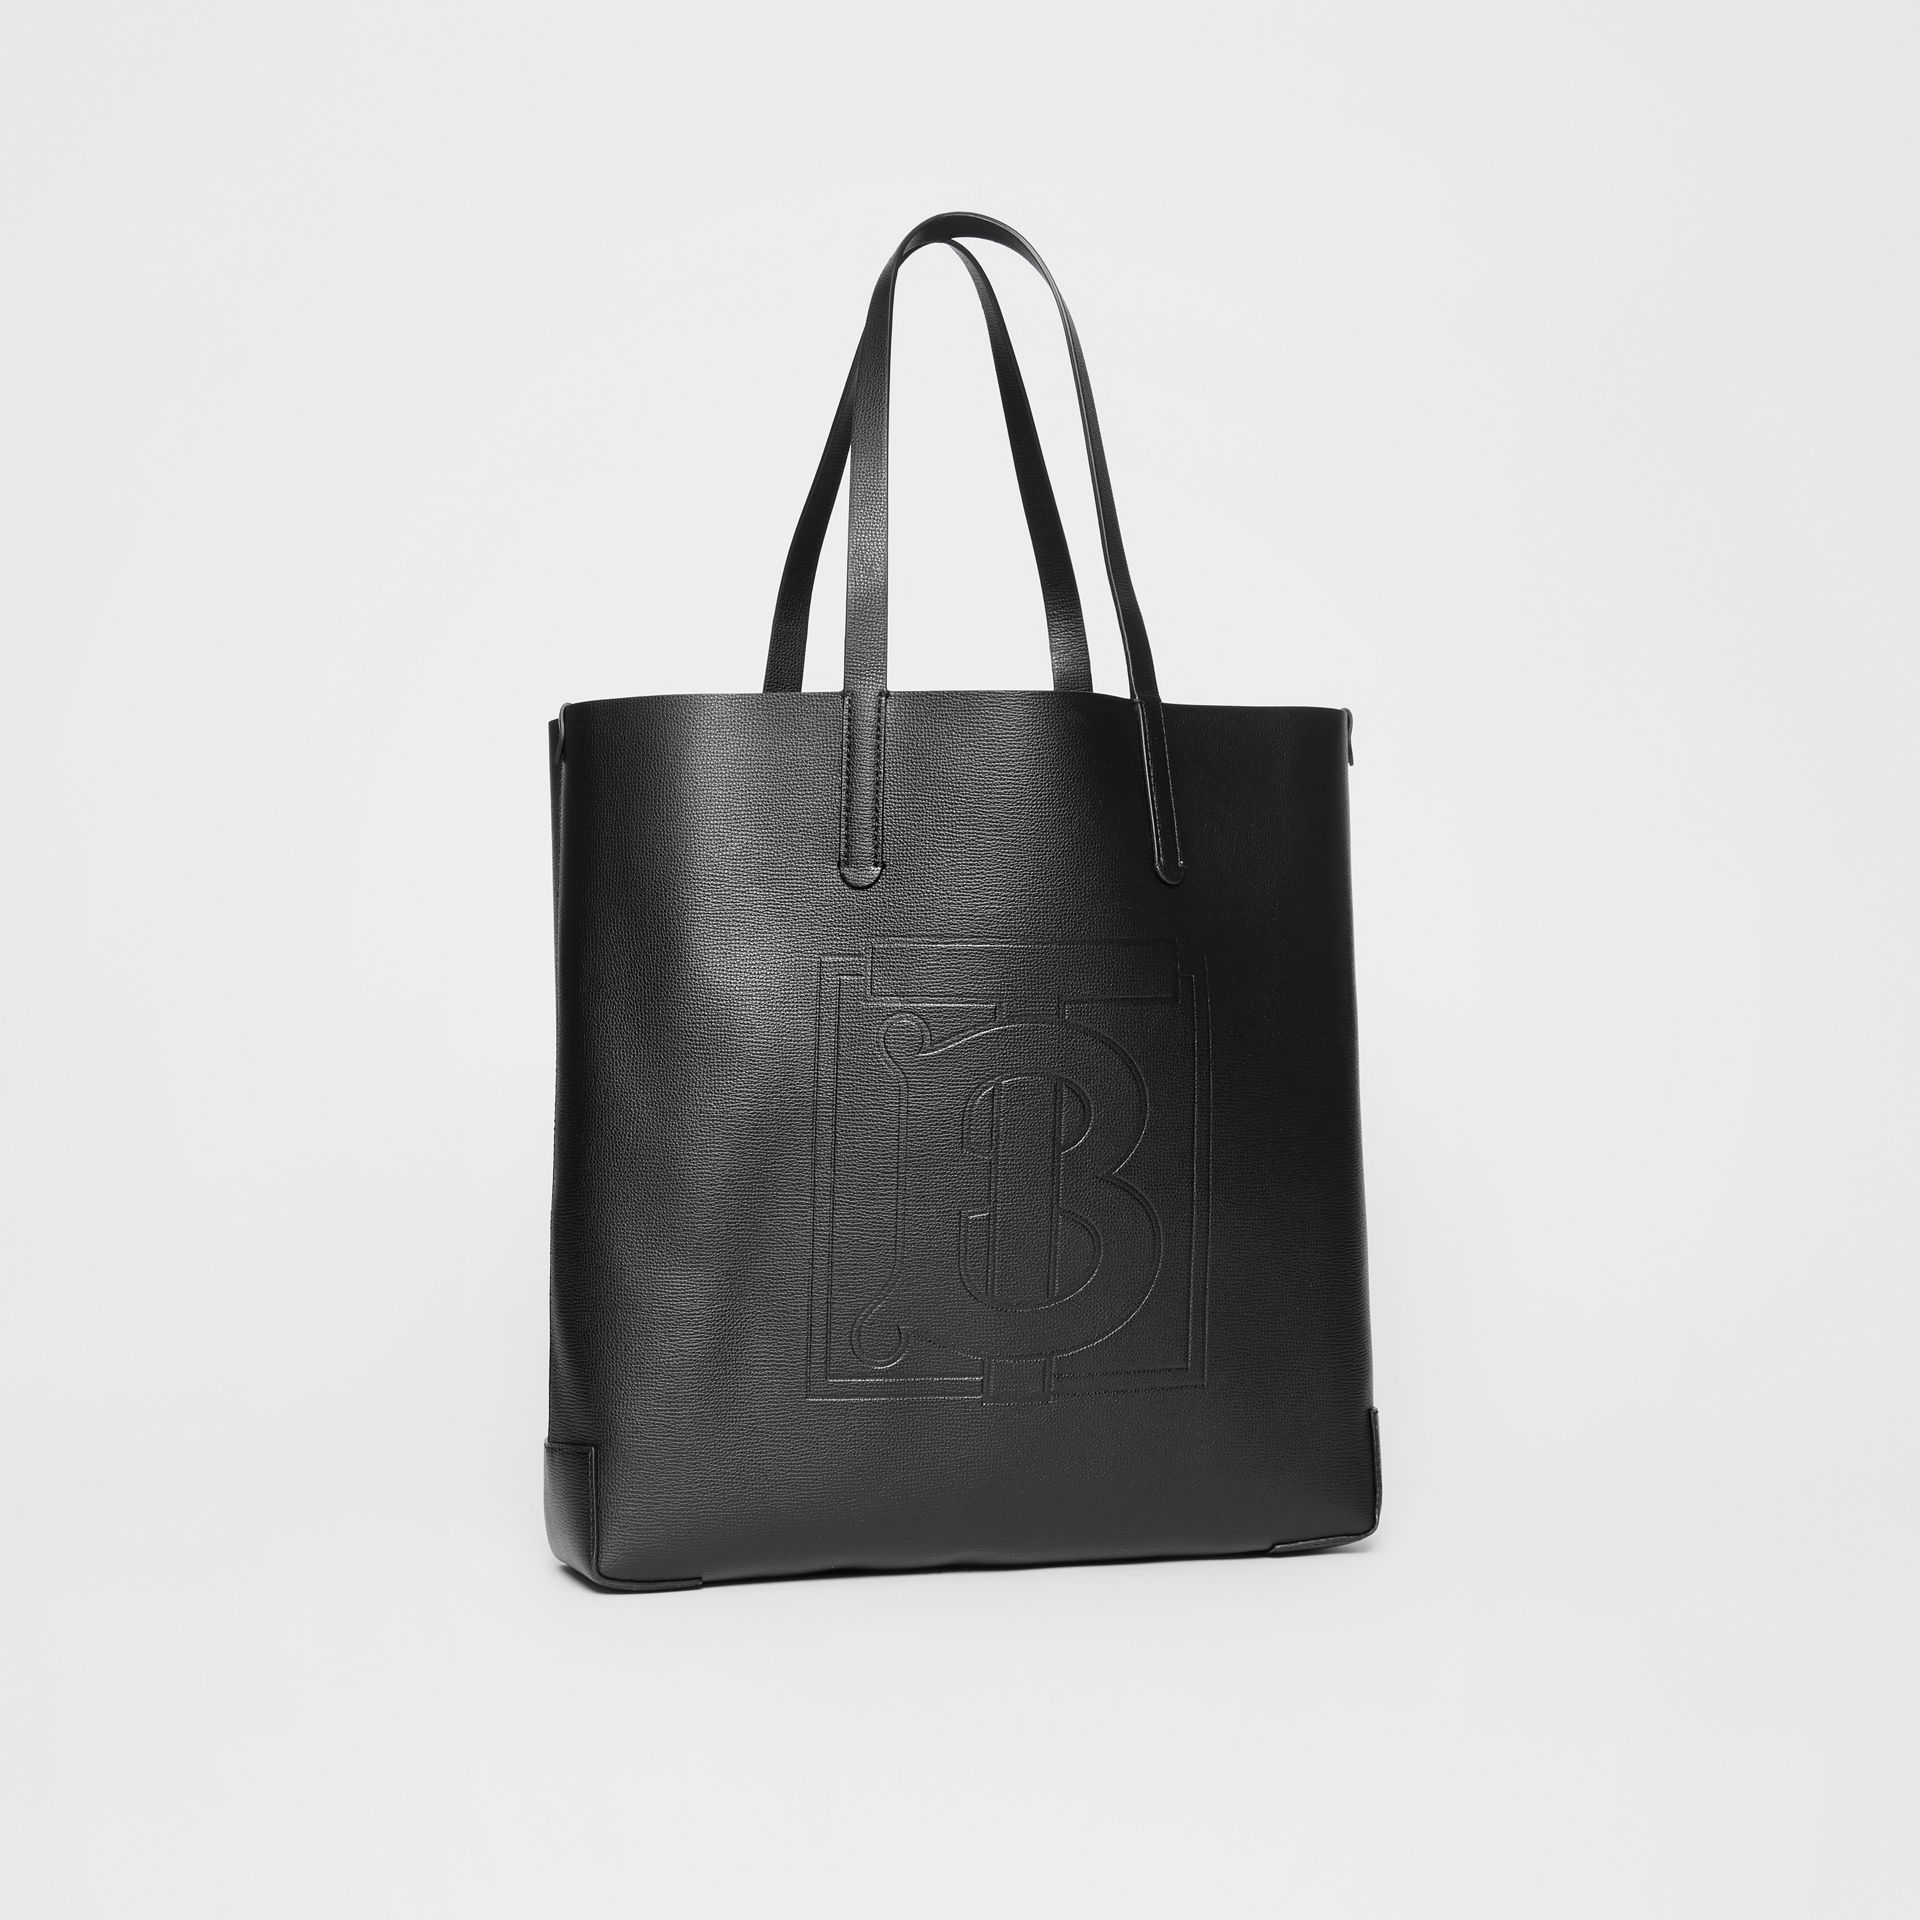 Grand sac tote en cuir embossé Monogram (Noir) | Burberry Canada - photo de la galerie 4